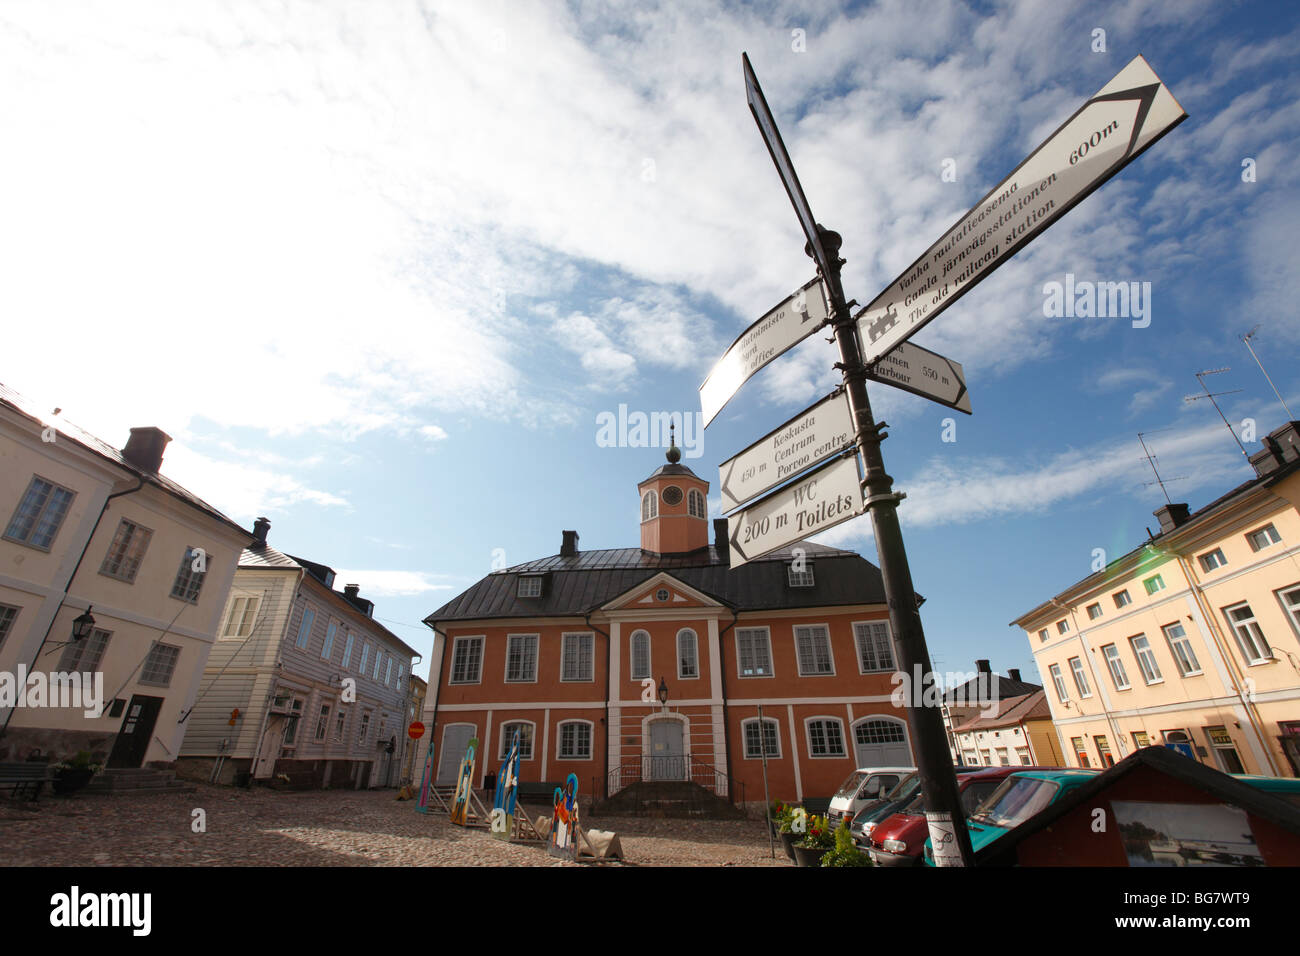 Finland, Southern Finland, Eastern Uusimaa, Porvoo, Market Square, Old Town Hall, Medieval Wooden Houses, Sign for - Stock Image